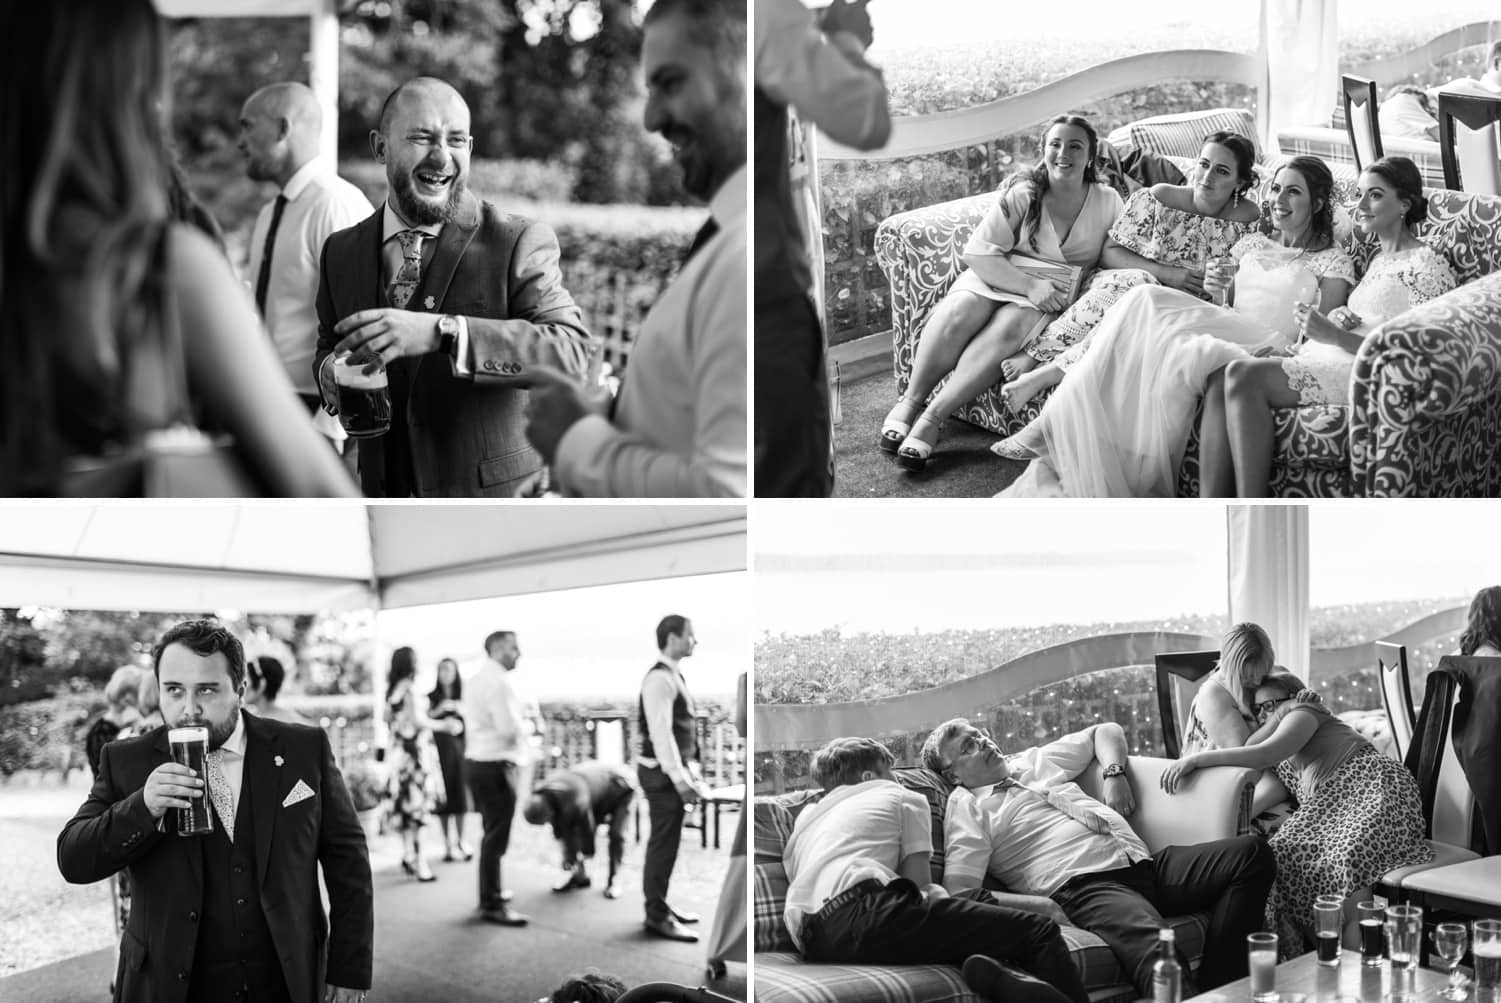 Wedding guests relaxing